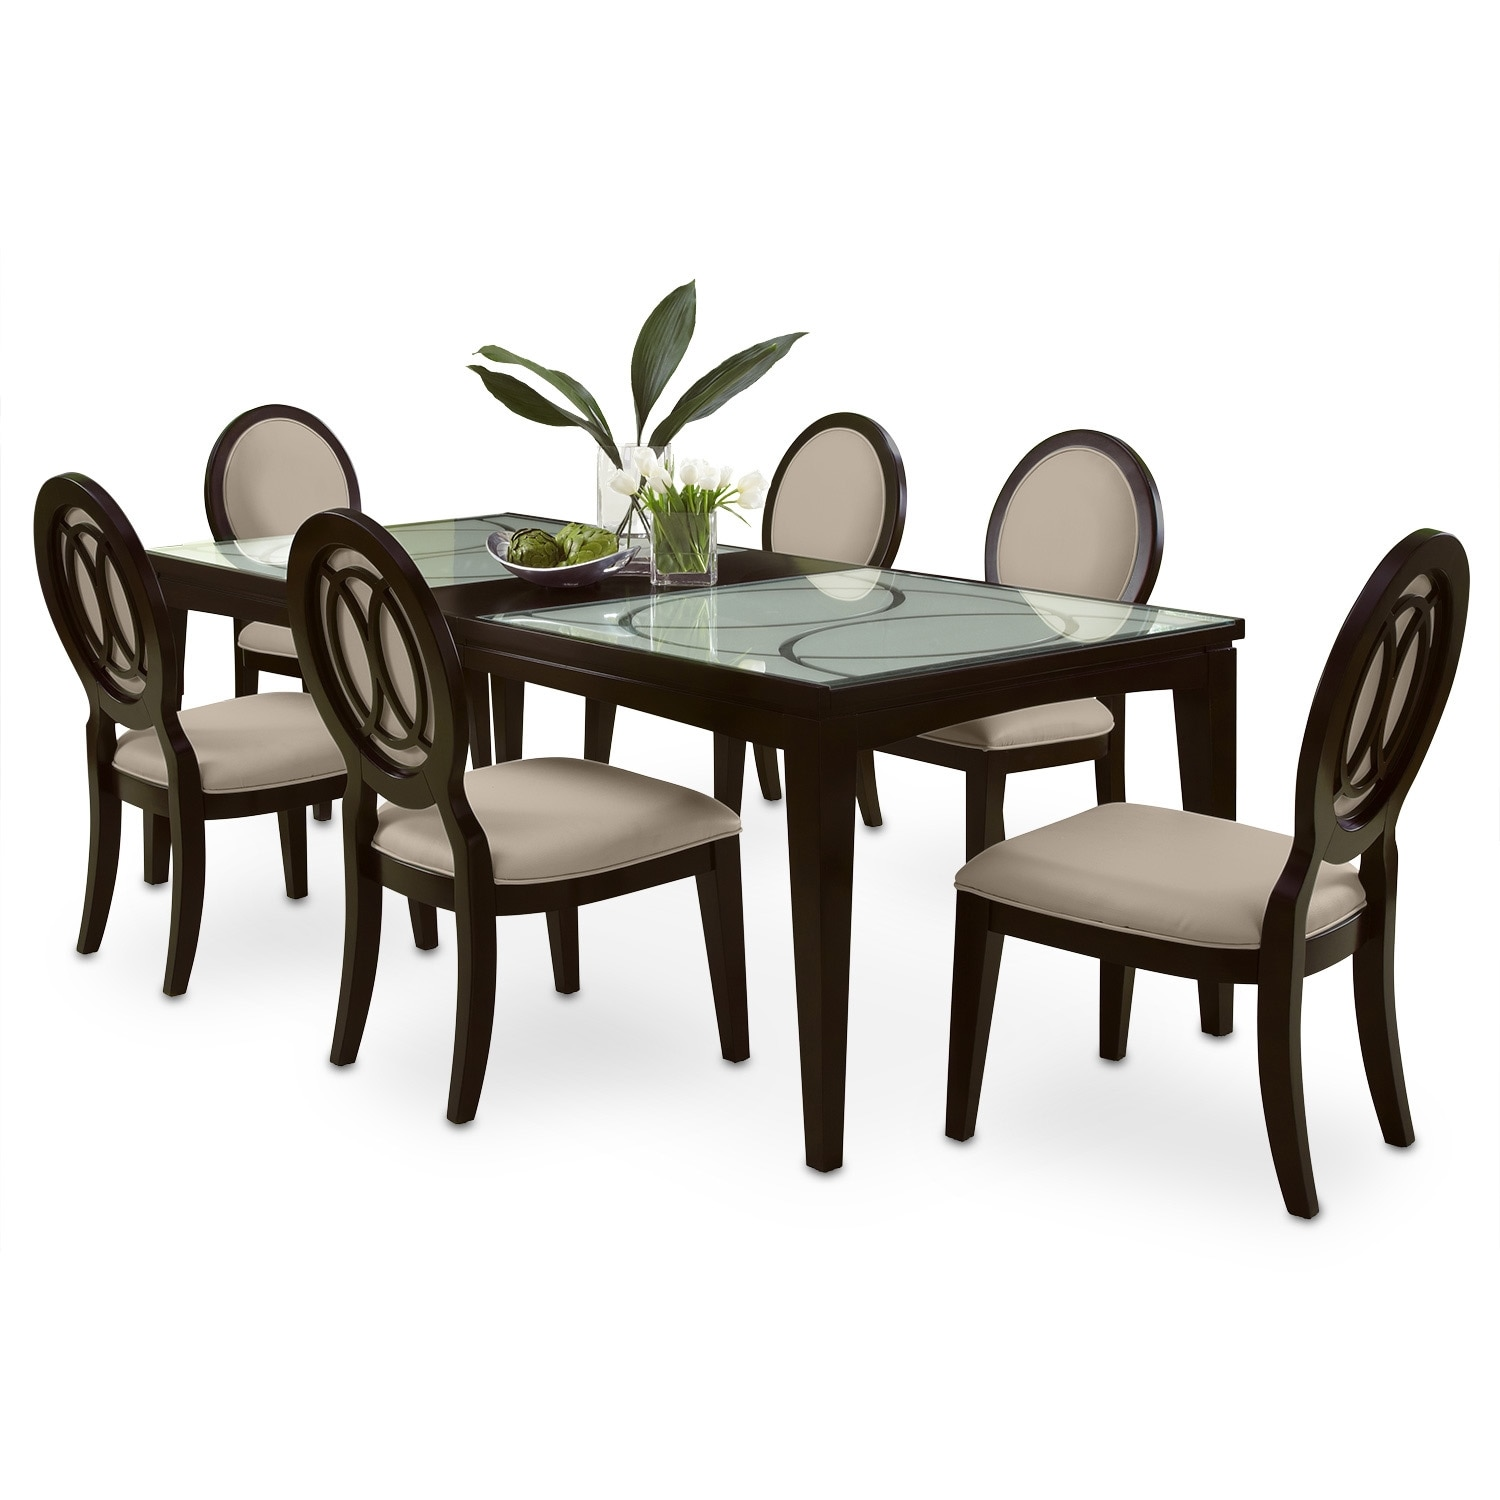 Cosmo table and 6 chairs merlot american signature for Dining room table chairs